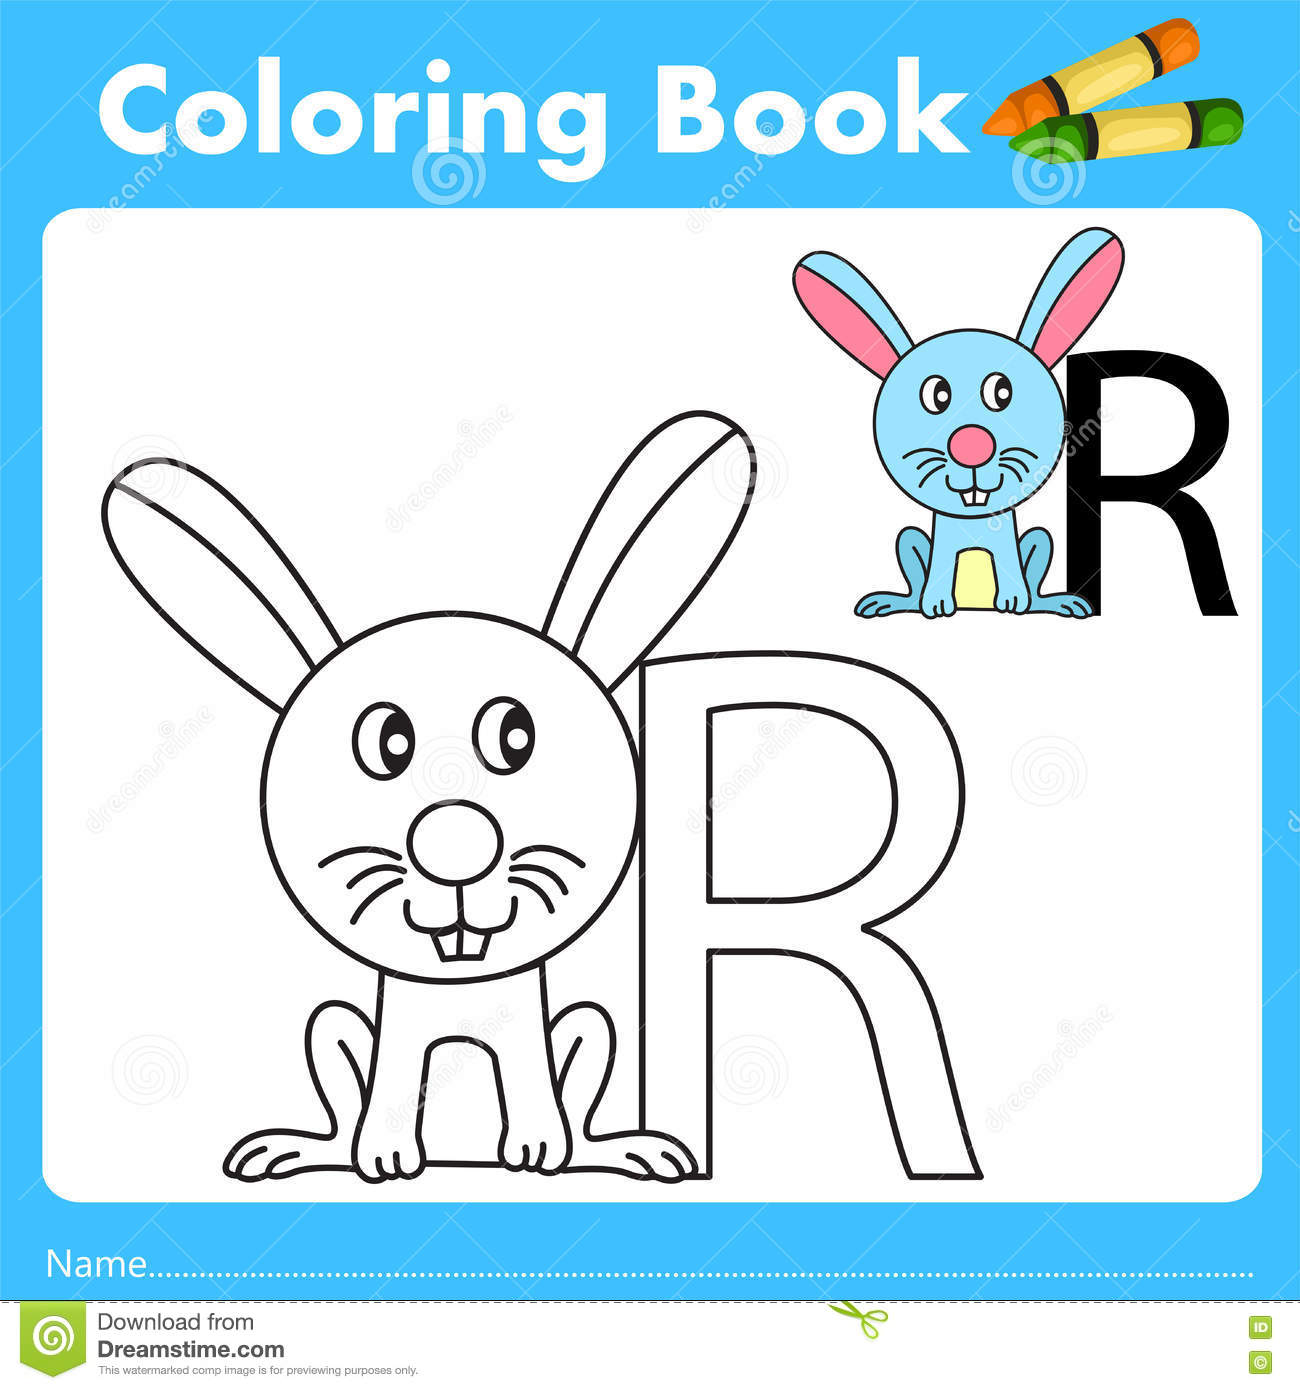 Book color illustrator - Illustrator Of Color Book With Rabbit Animal Stock Vector